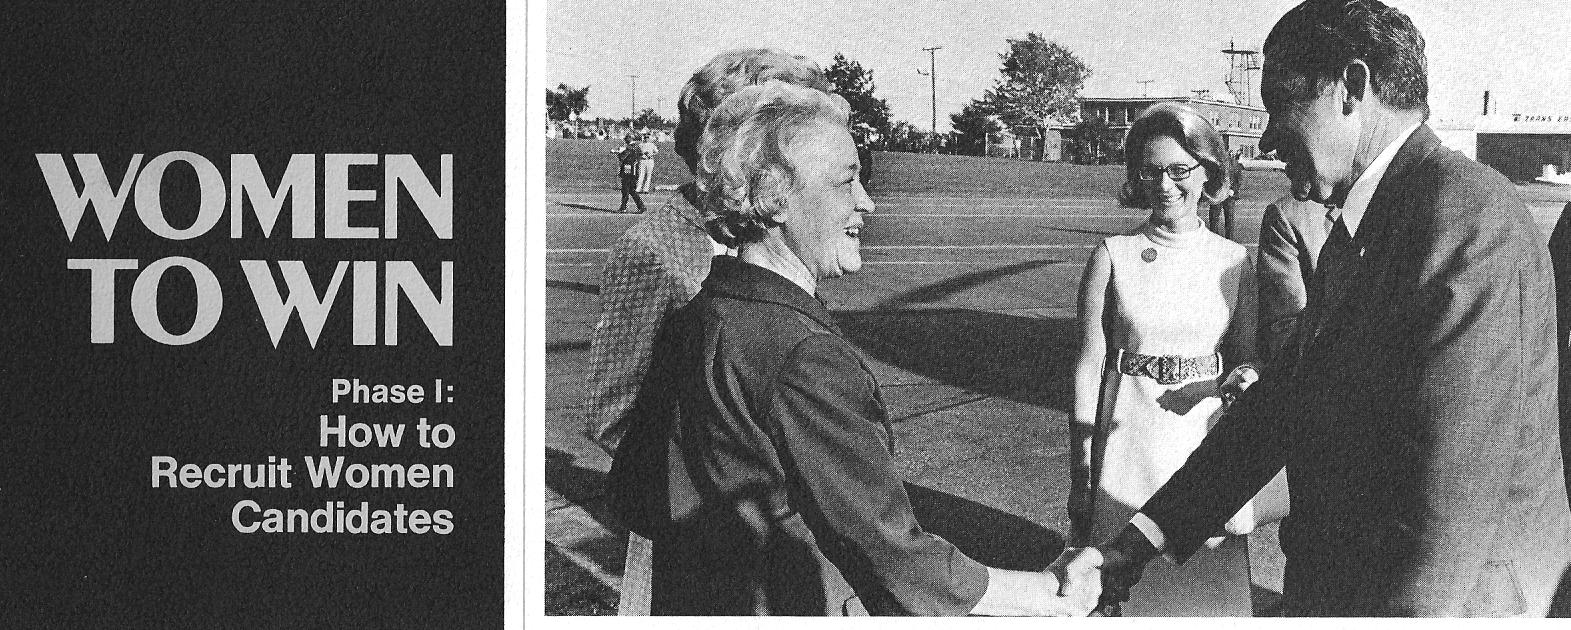 Senator Margaret Chase Smith campaigns with Richard Nixon